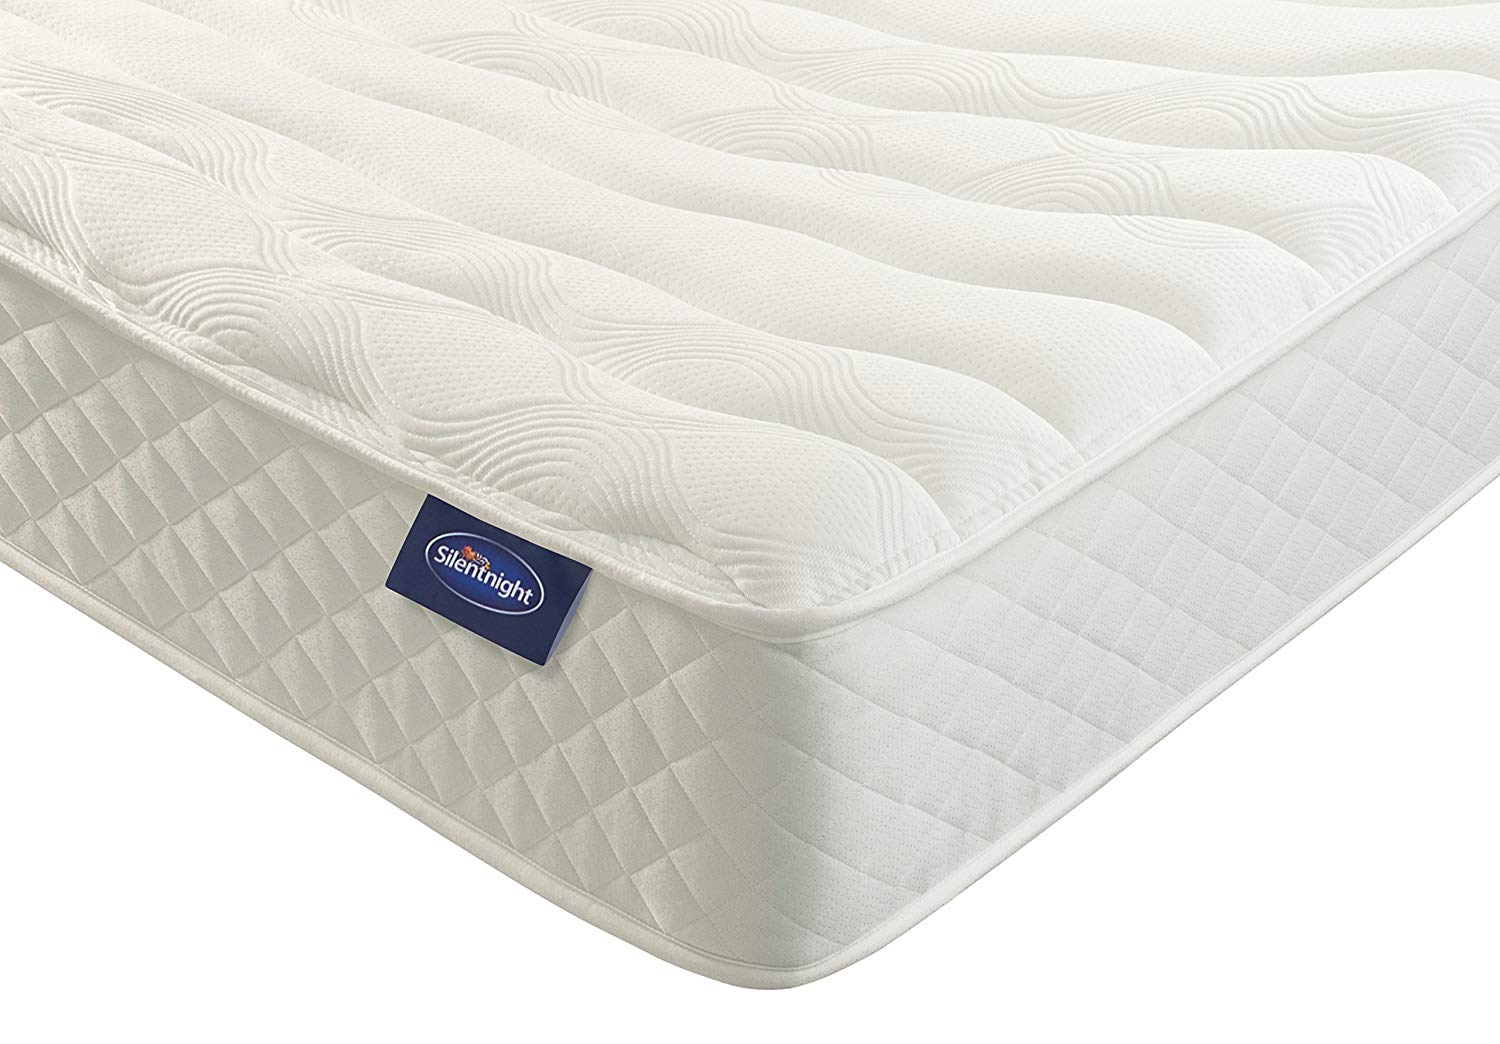 Silentnight Memory Foam Mattress | Zoned Spring System | Cocooning Memory Foam | Quilted Cover | Medium – Double